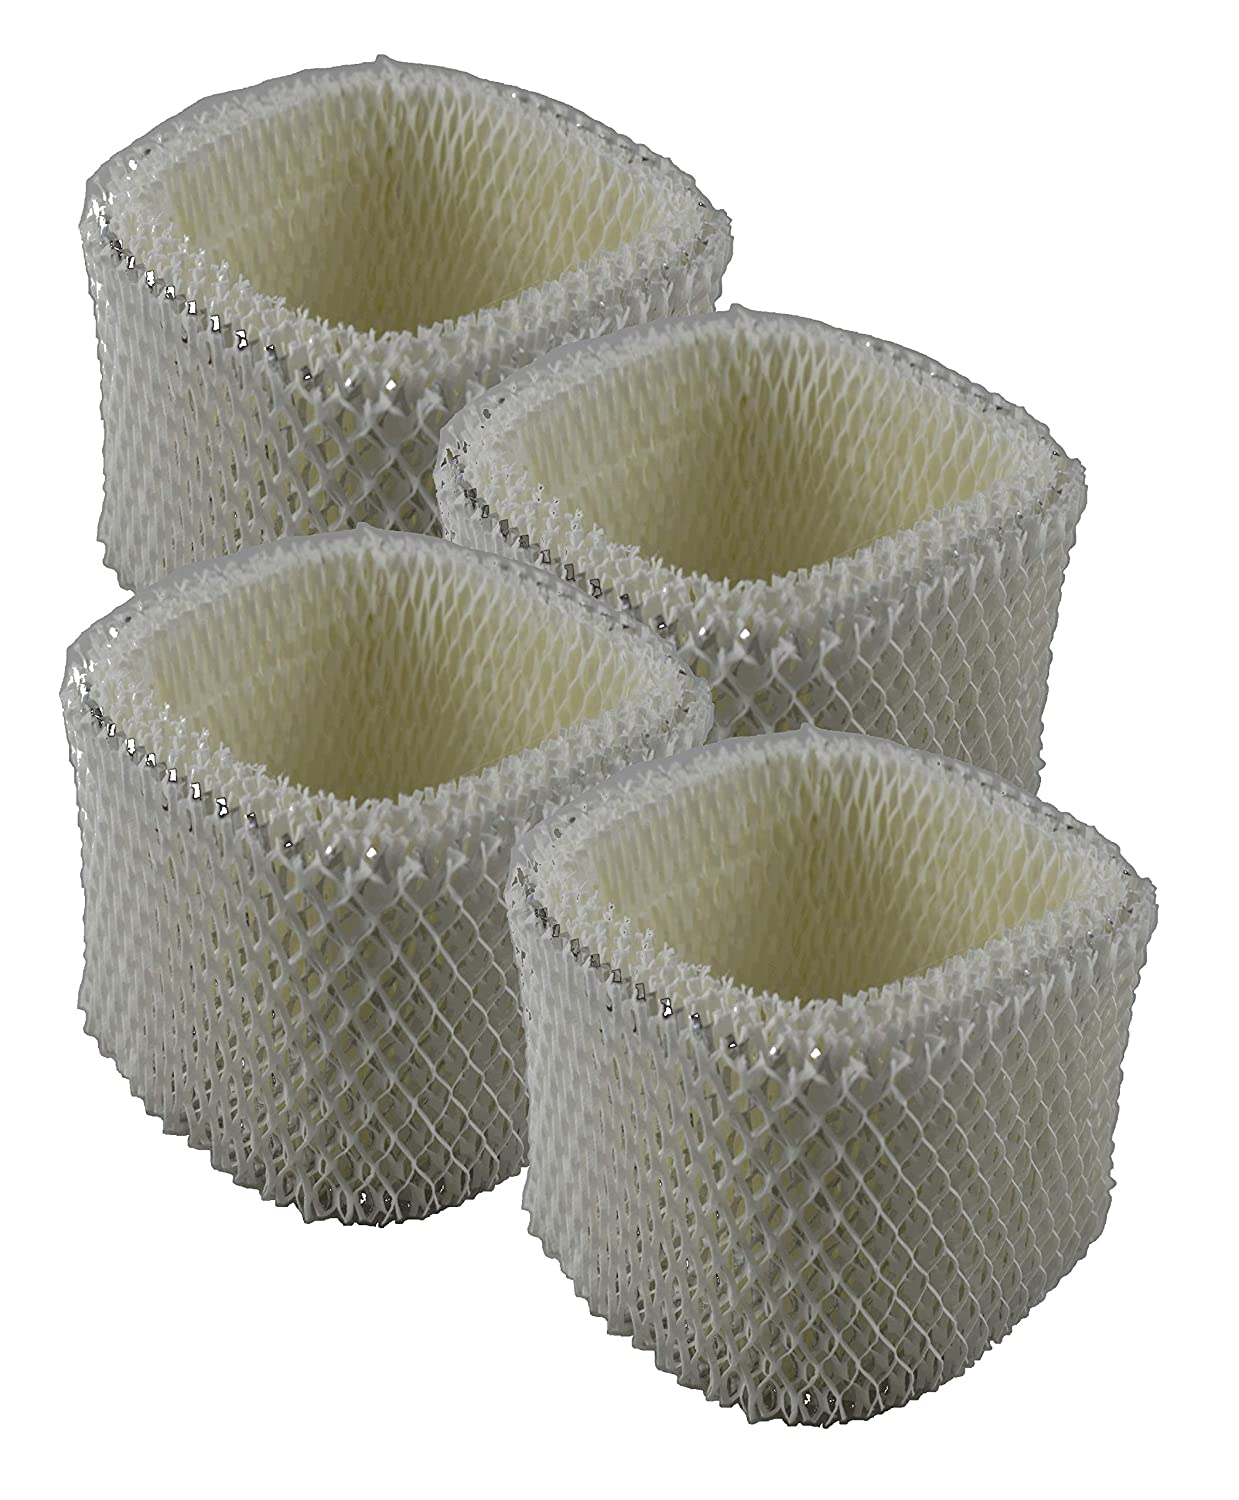 Air Filter Factory 4-Pack Compatible Replacement for Hamilton Beach 05910 Humidifier Filter